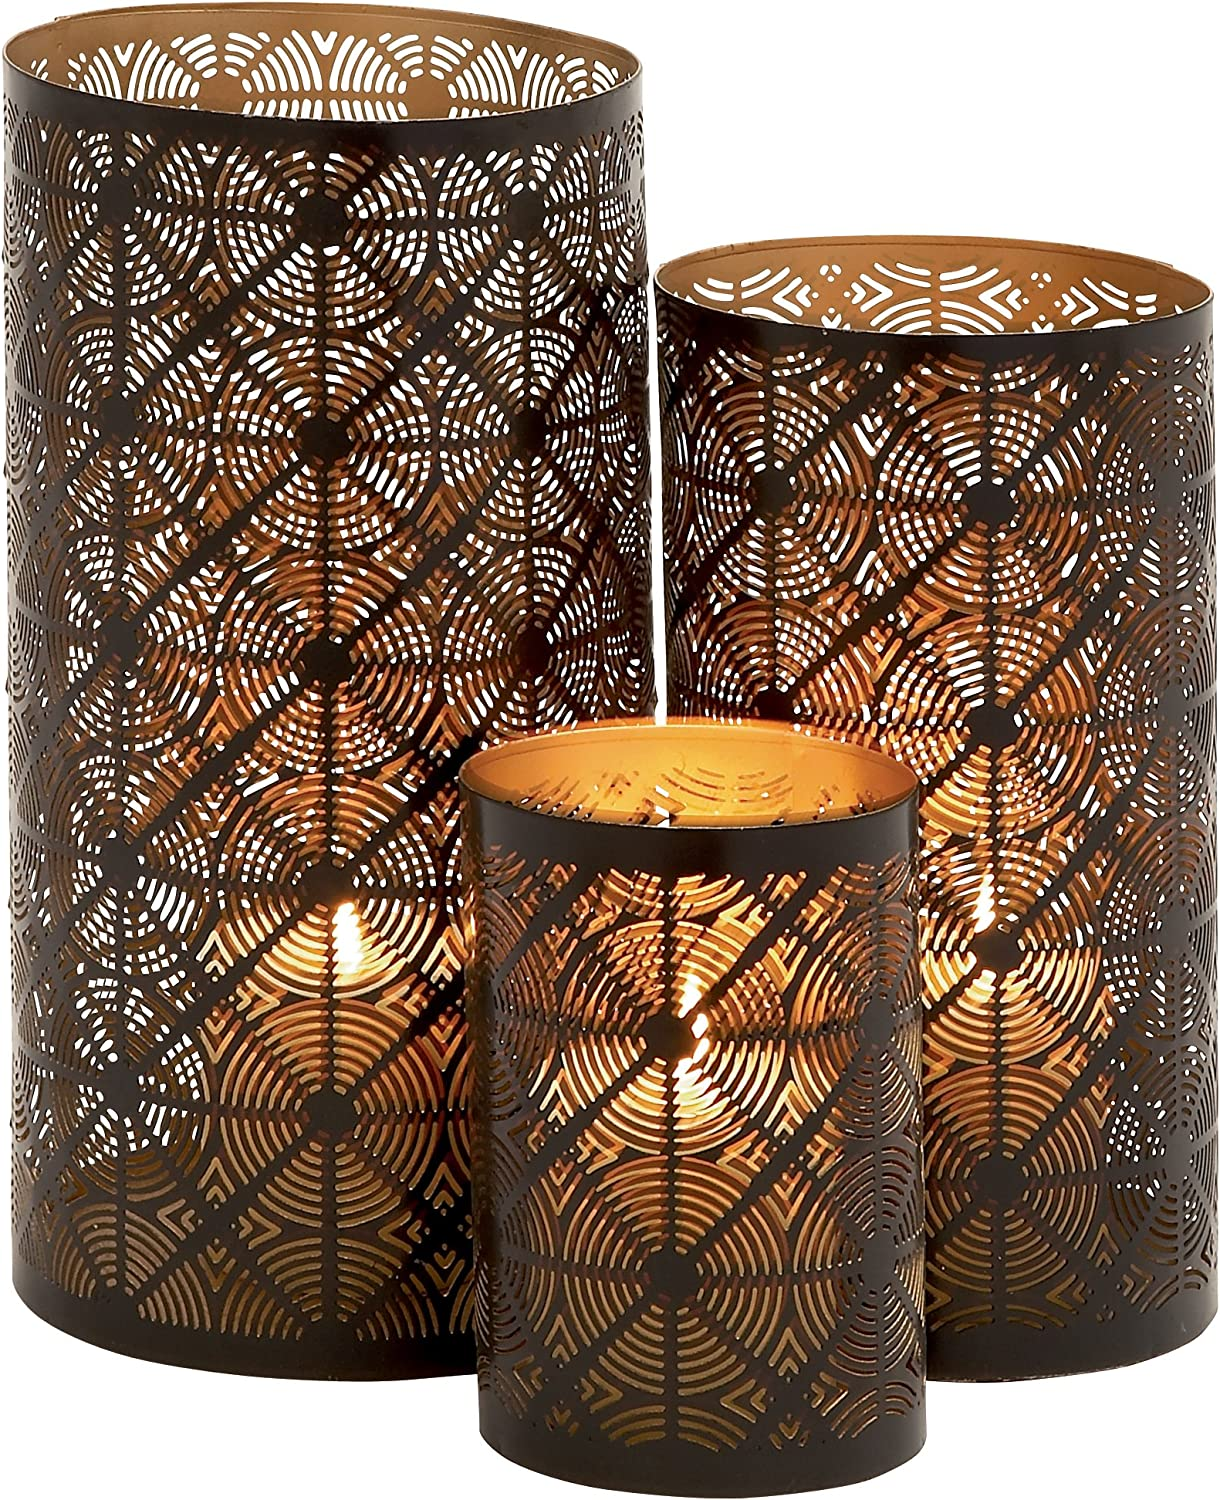 Deco 79 Metal Candle Holder 12 Finally popular Financial sales sale brand S 6-Inch Brass 10 by Bronze